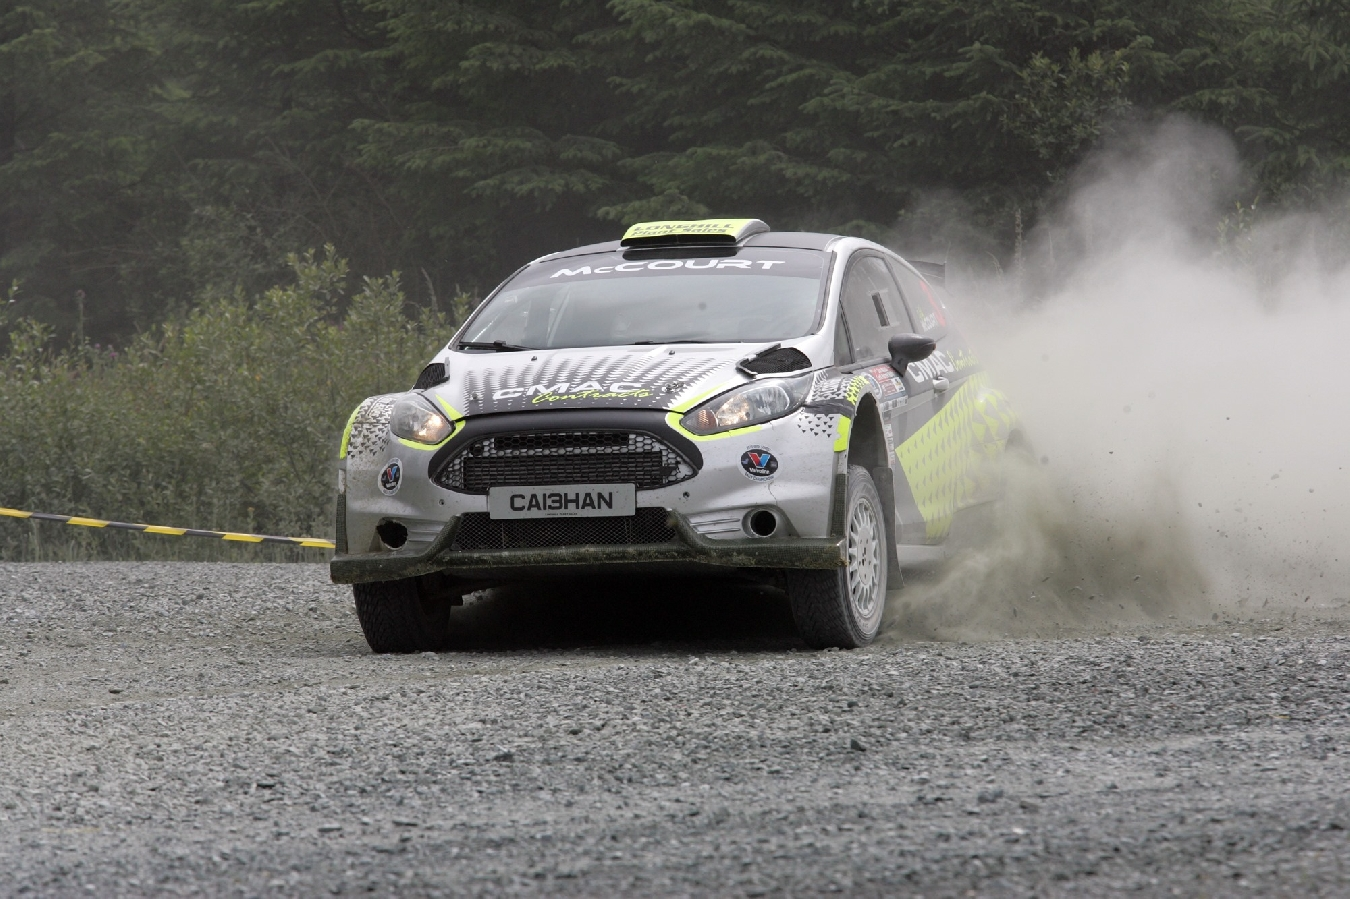 McCourt wins championship after strong Cork showing